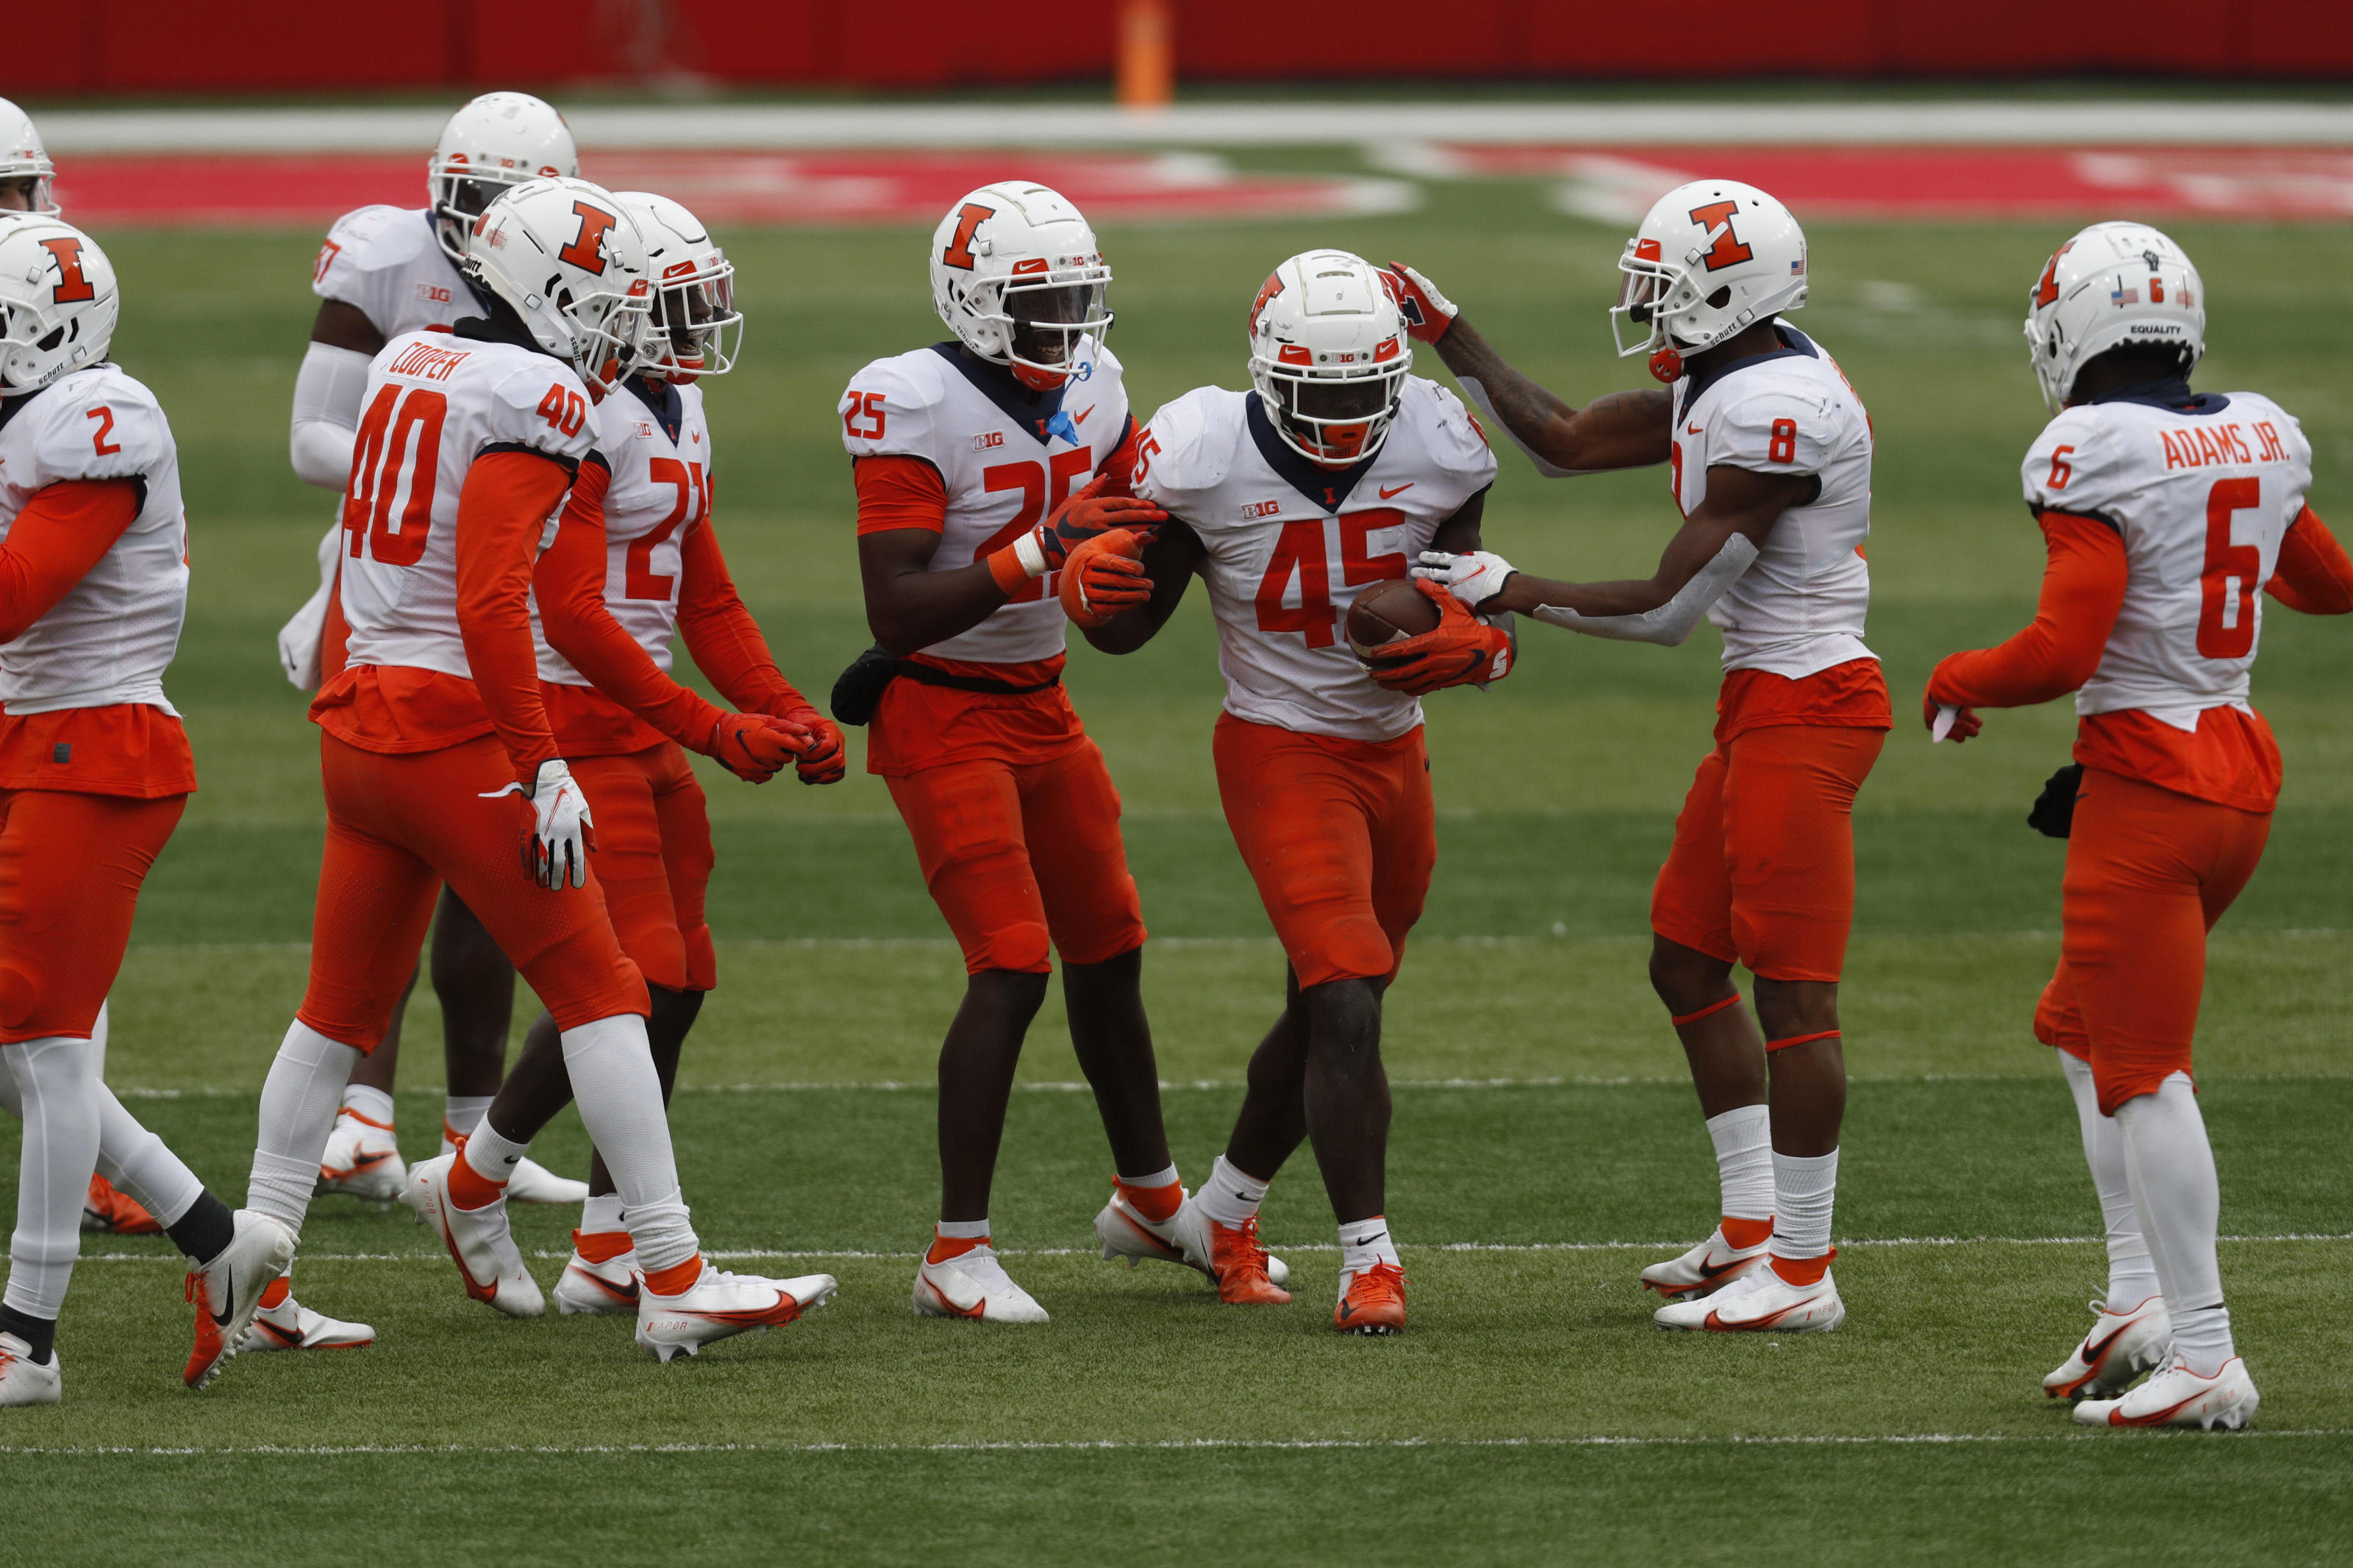 Illinois Football 4 Ways The Illini Can Beat The Northwestern Wildcats Miss dig is michigan's only utility safety notification system. illinois football 4 ways the illini